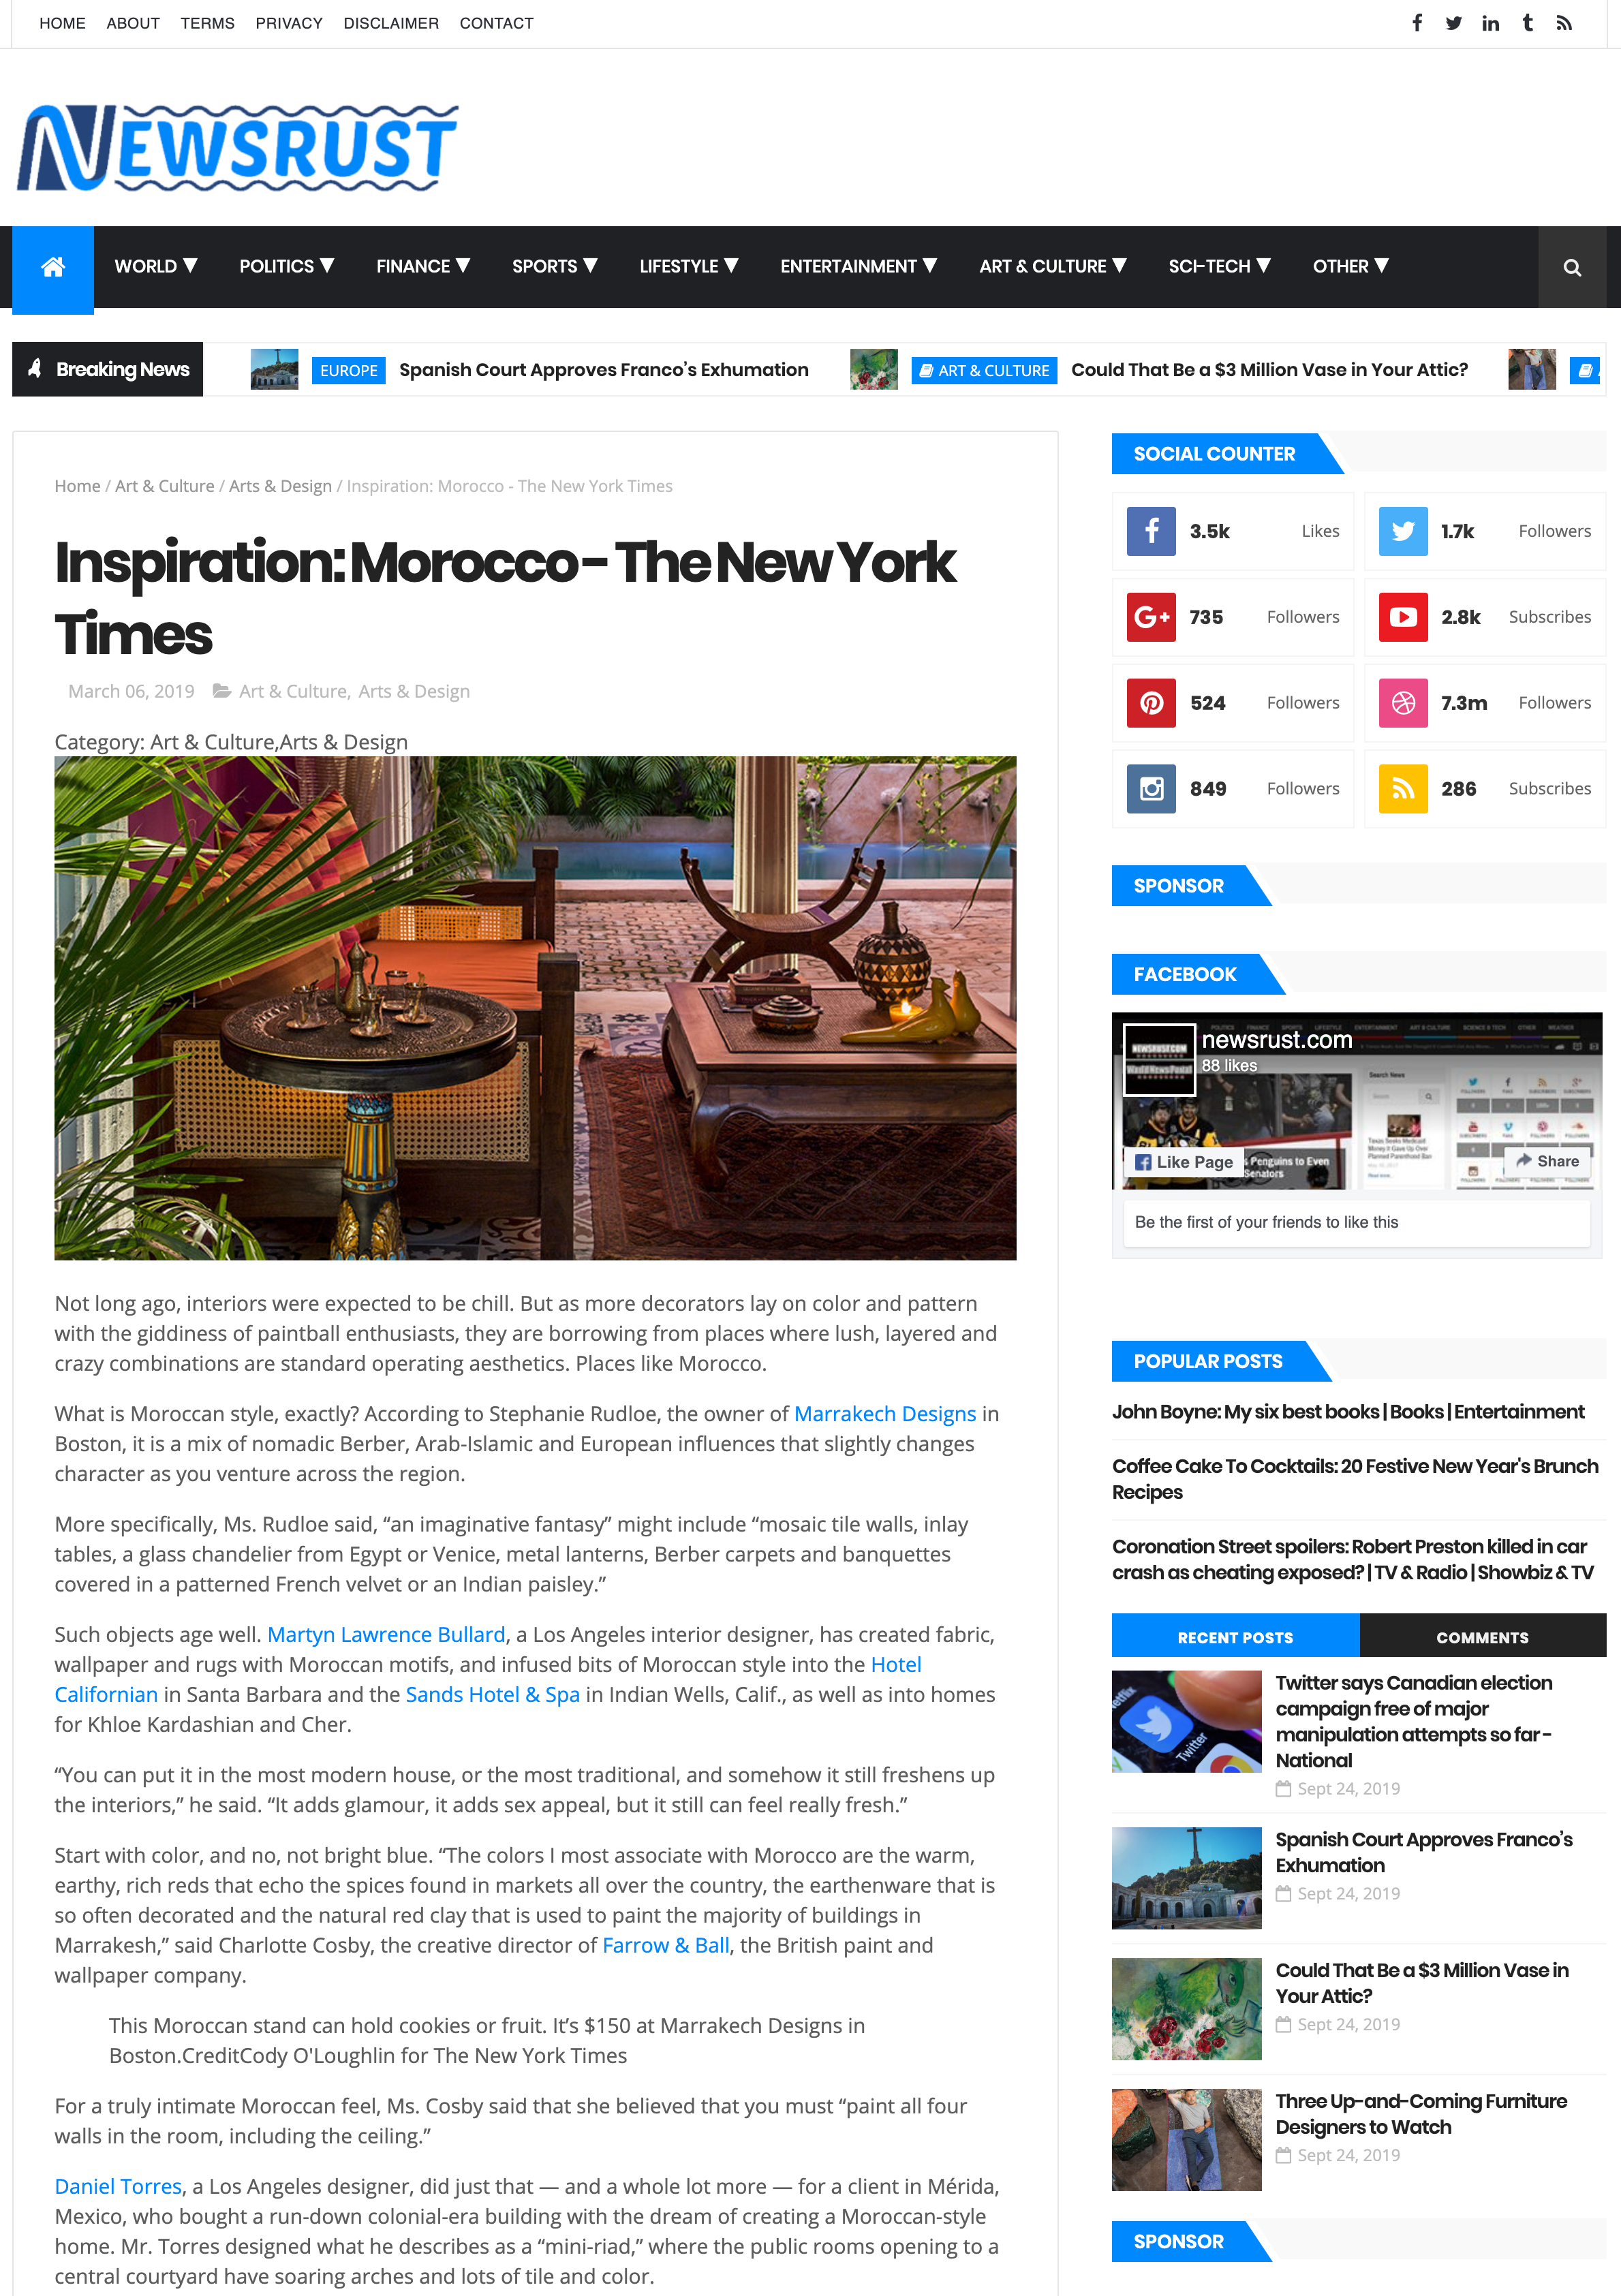 Inspiration  Morocco - The New York Times - NEWSRUST.png